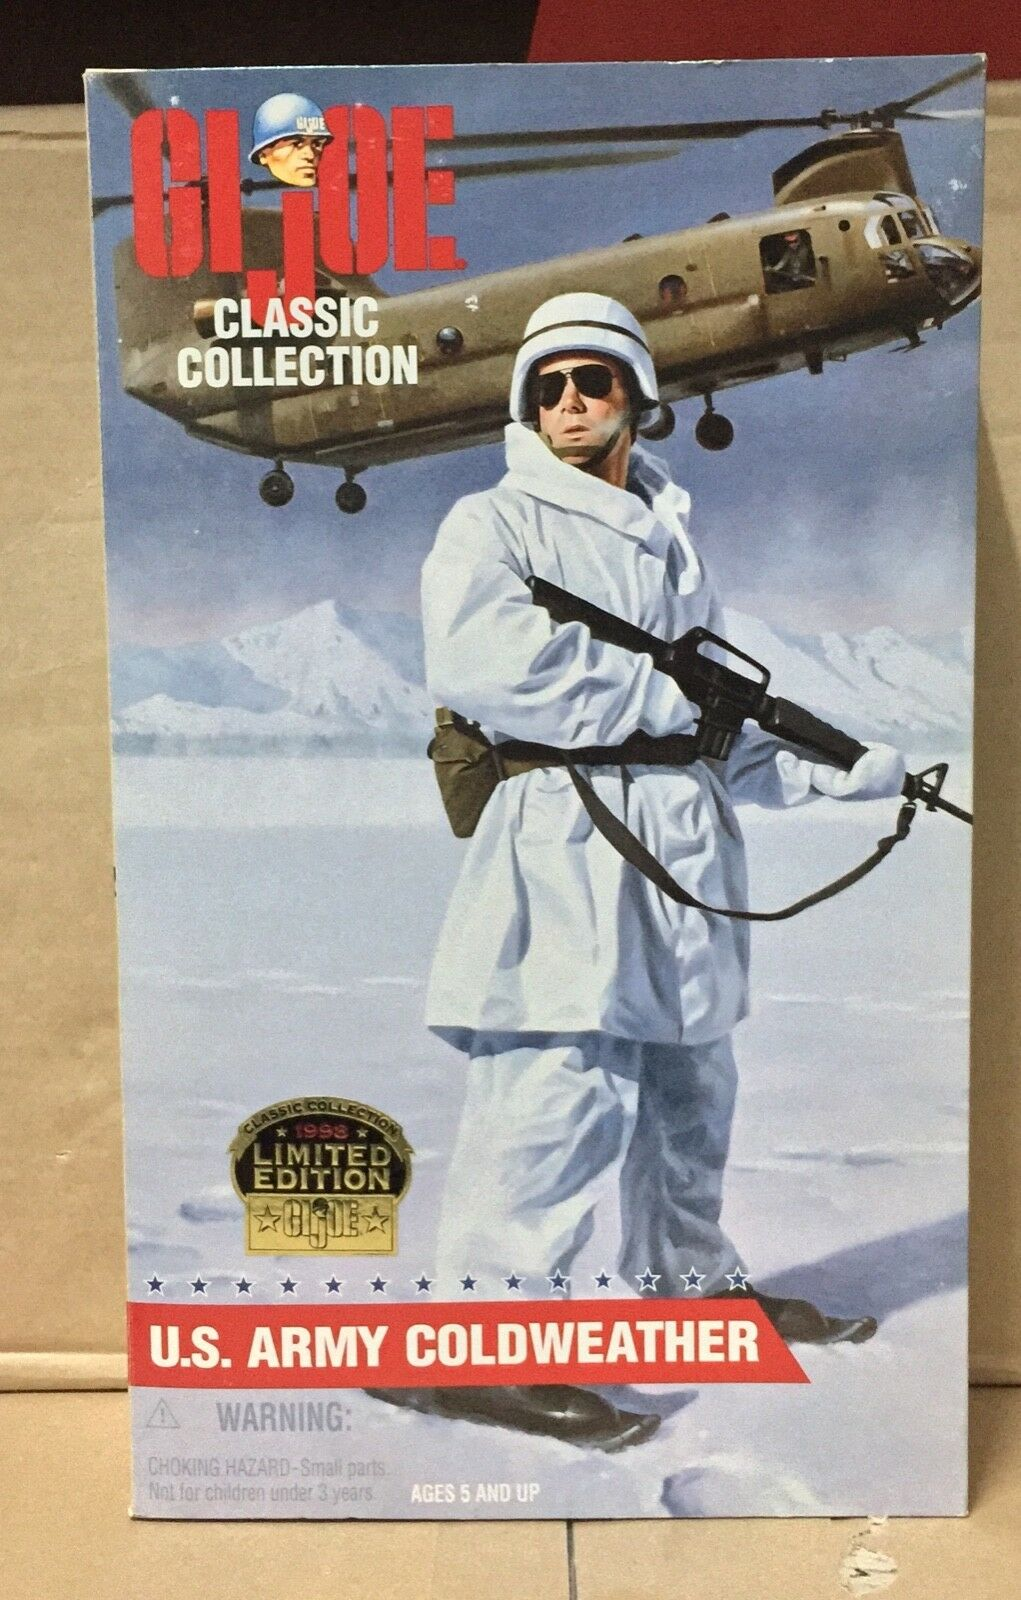 GI JOE  CLASSIC COLLECTION U.S. ARMY COLDWEATHER